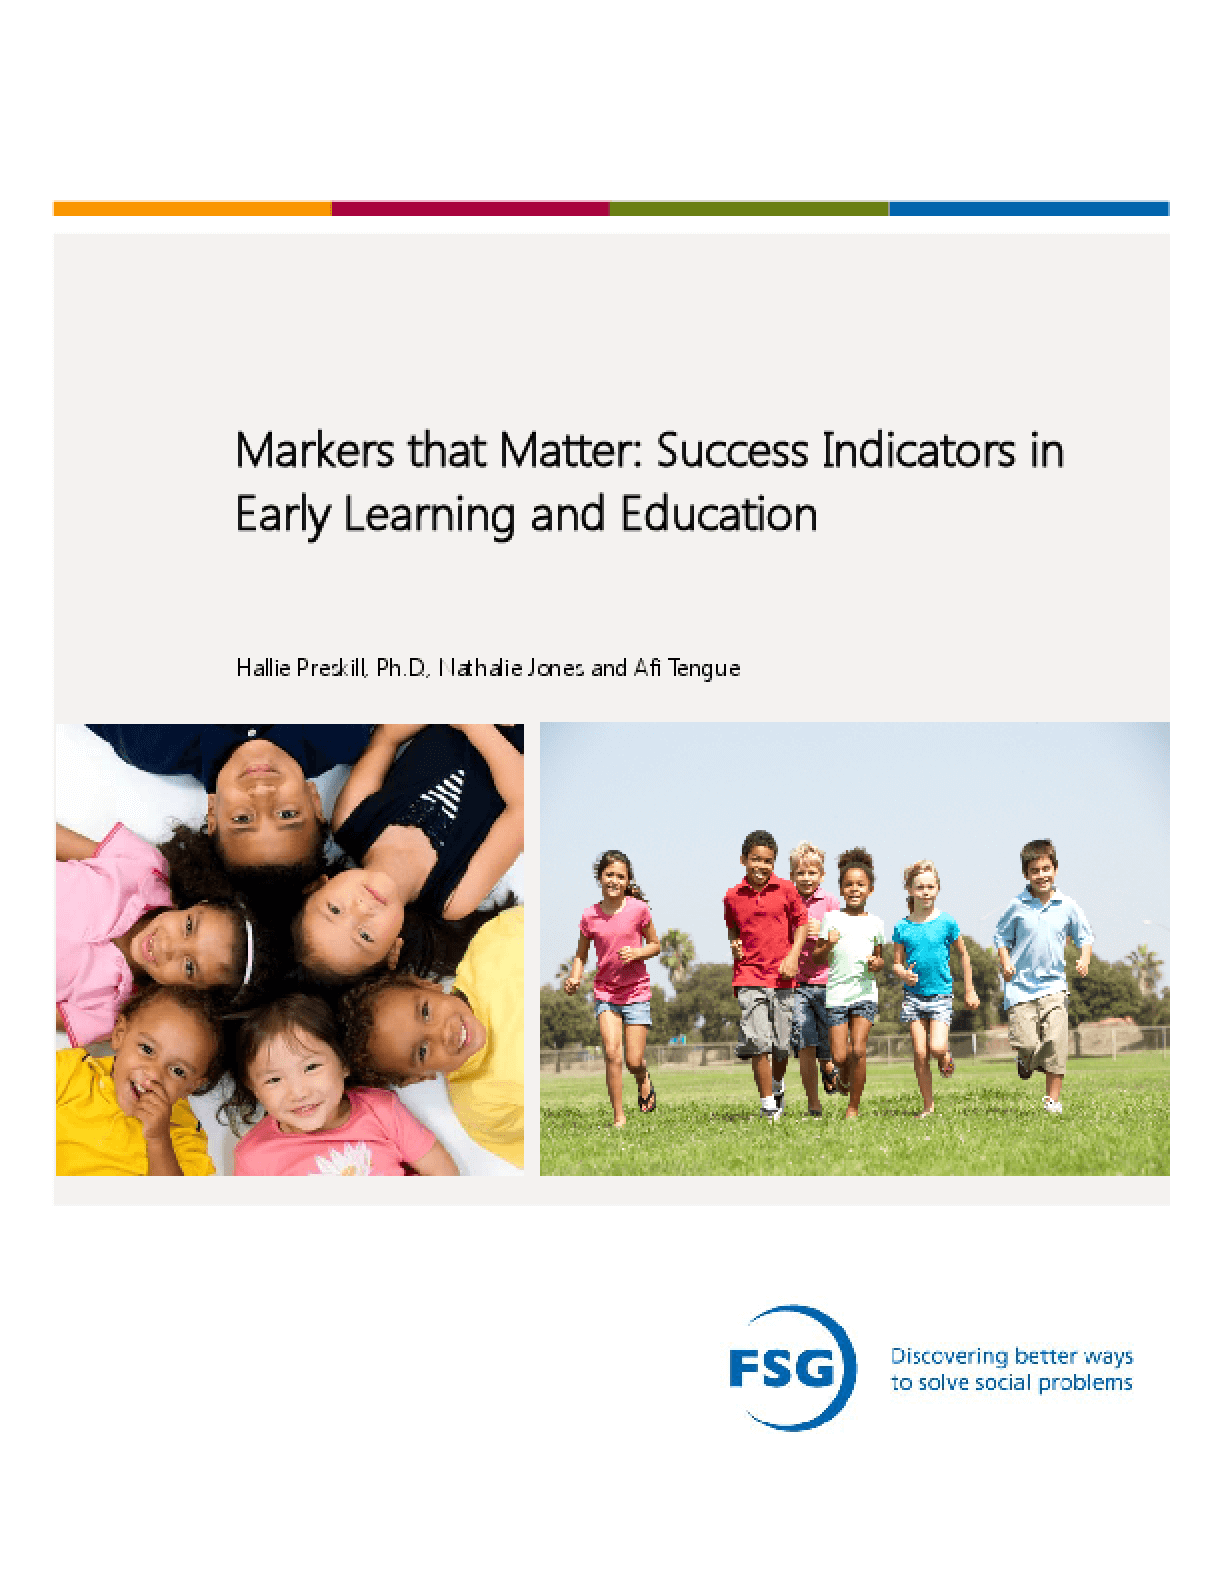 Markers that Matter: Success Indicators in Early Learning and Education